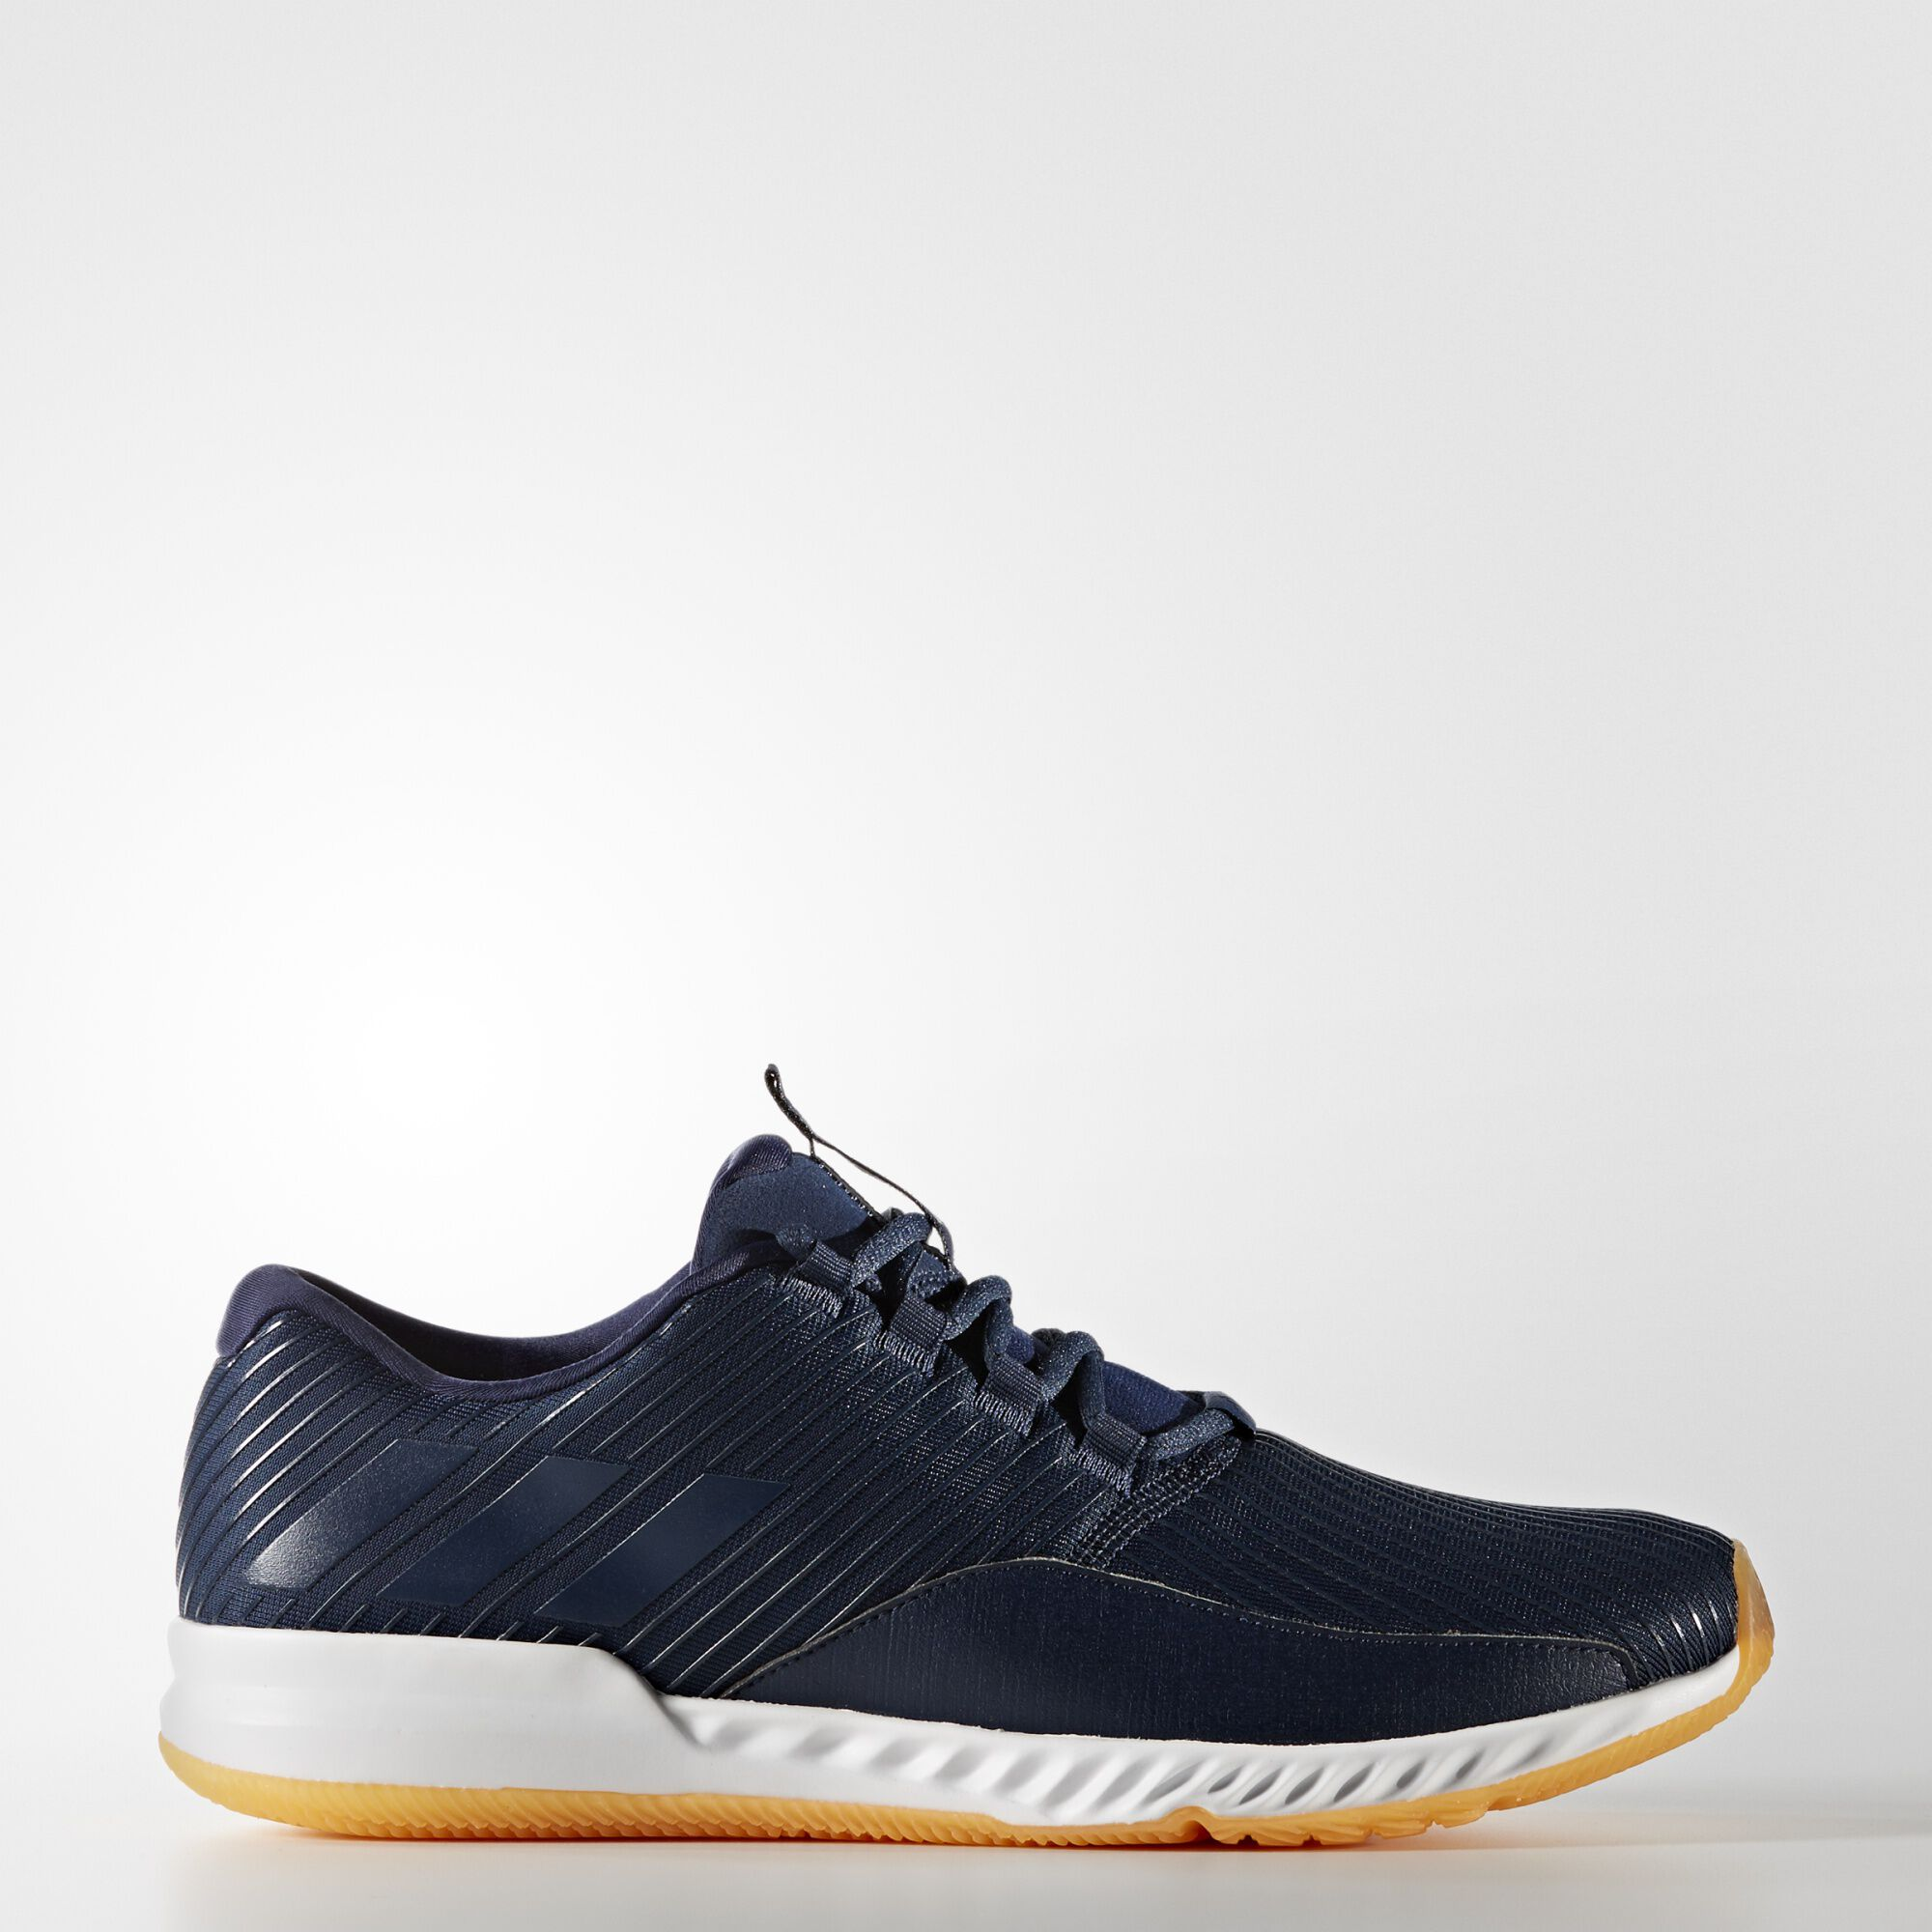 adidas shoes online 50 discount